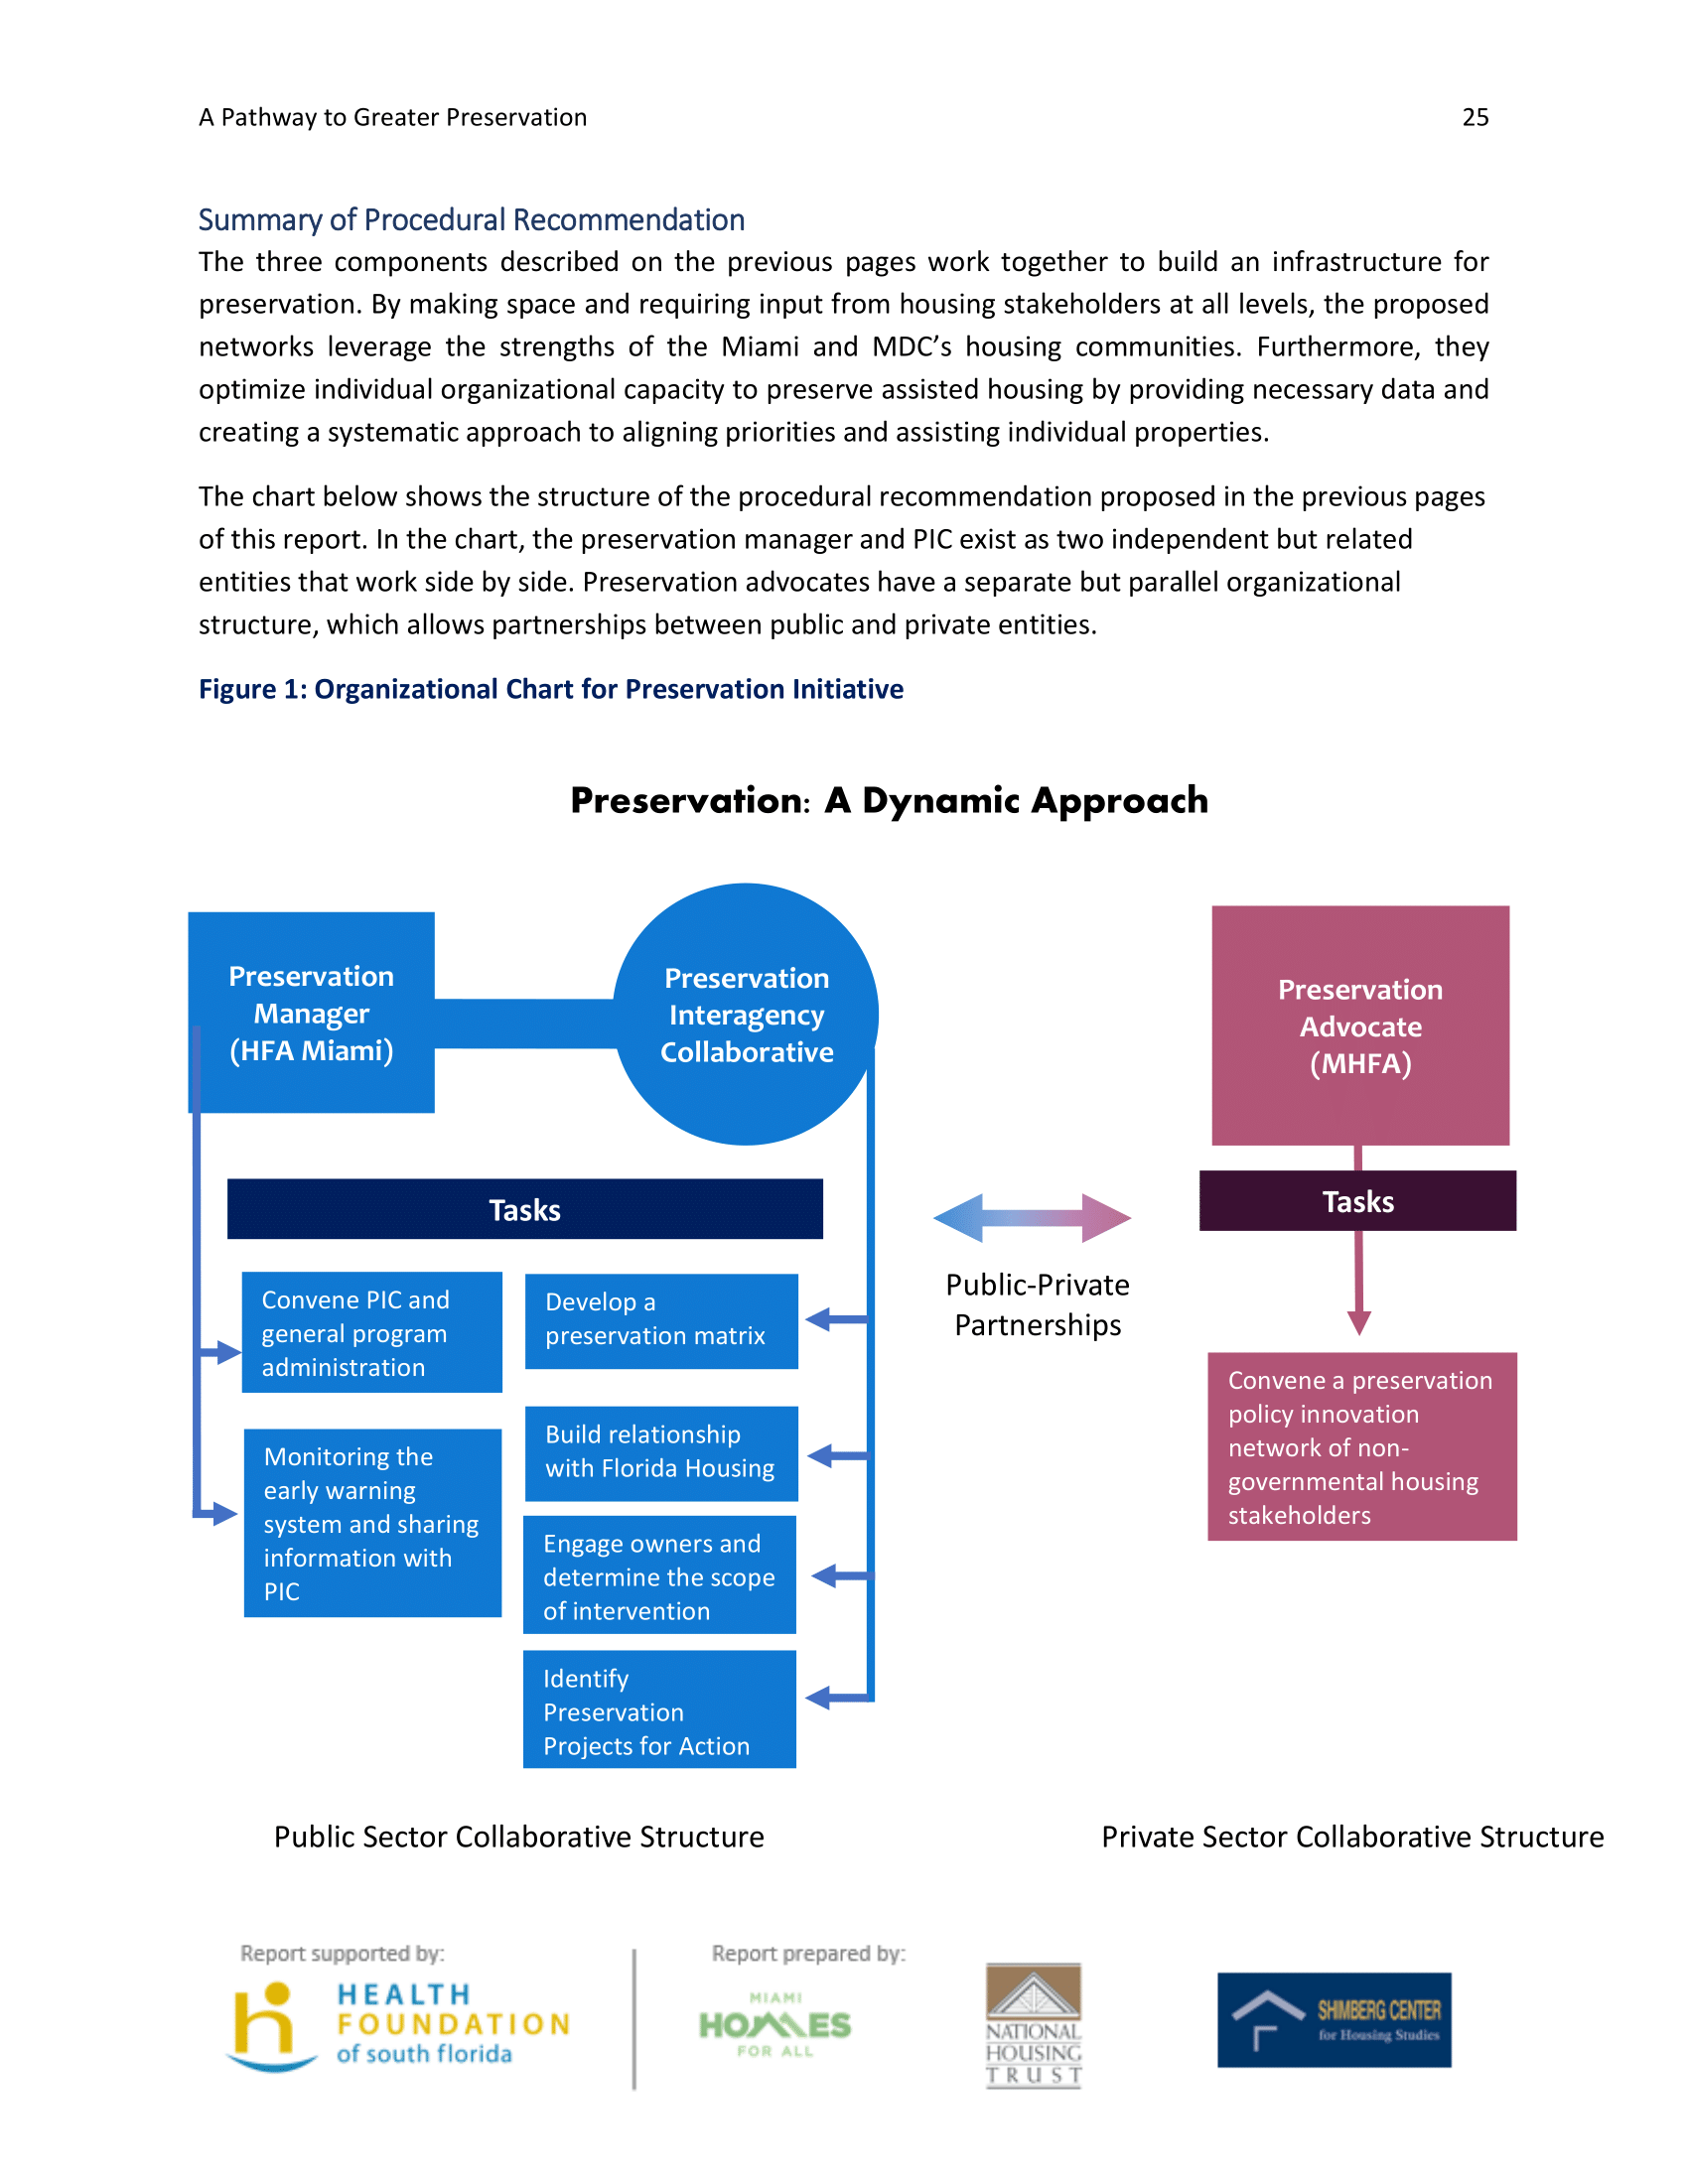 A Pathway to Greater Preservation - February 2018-33.png